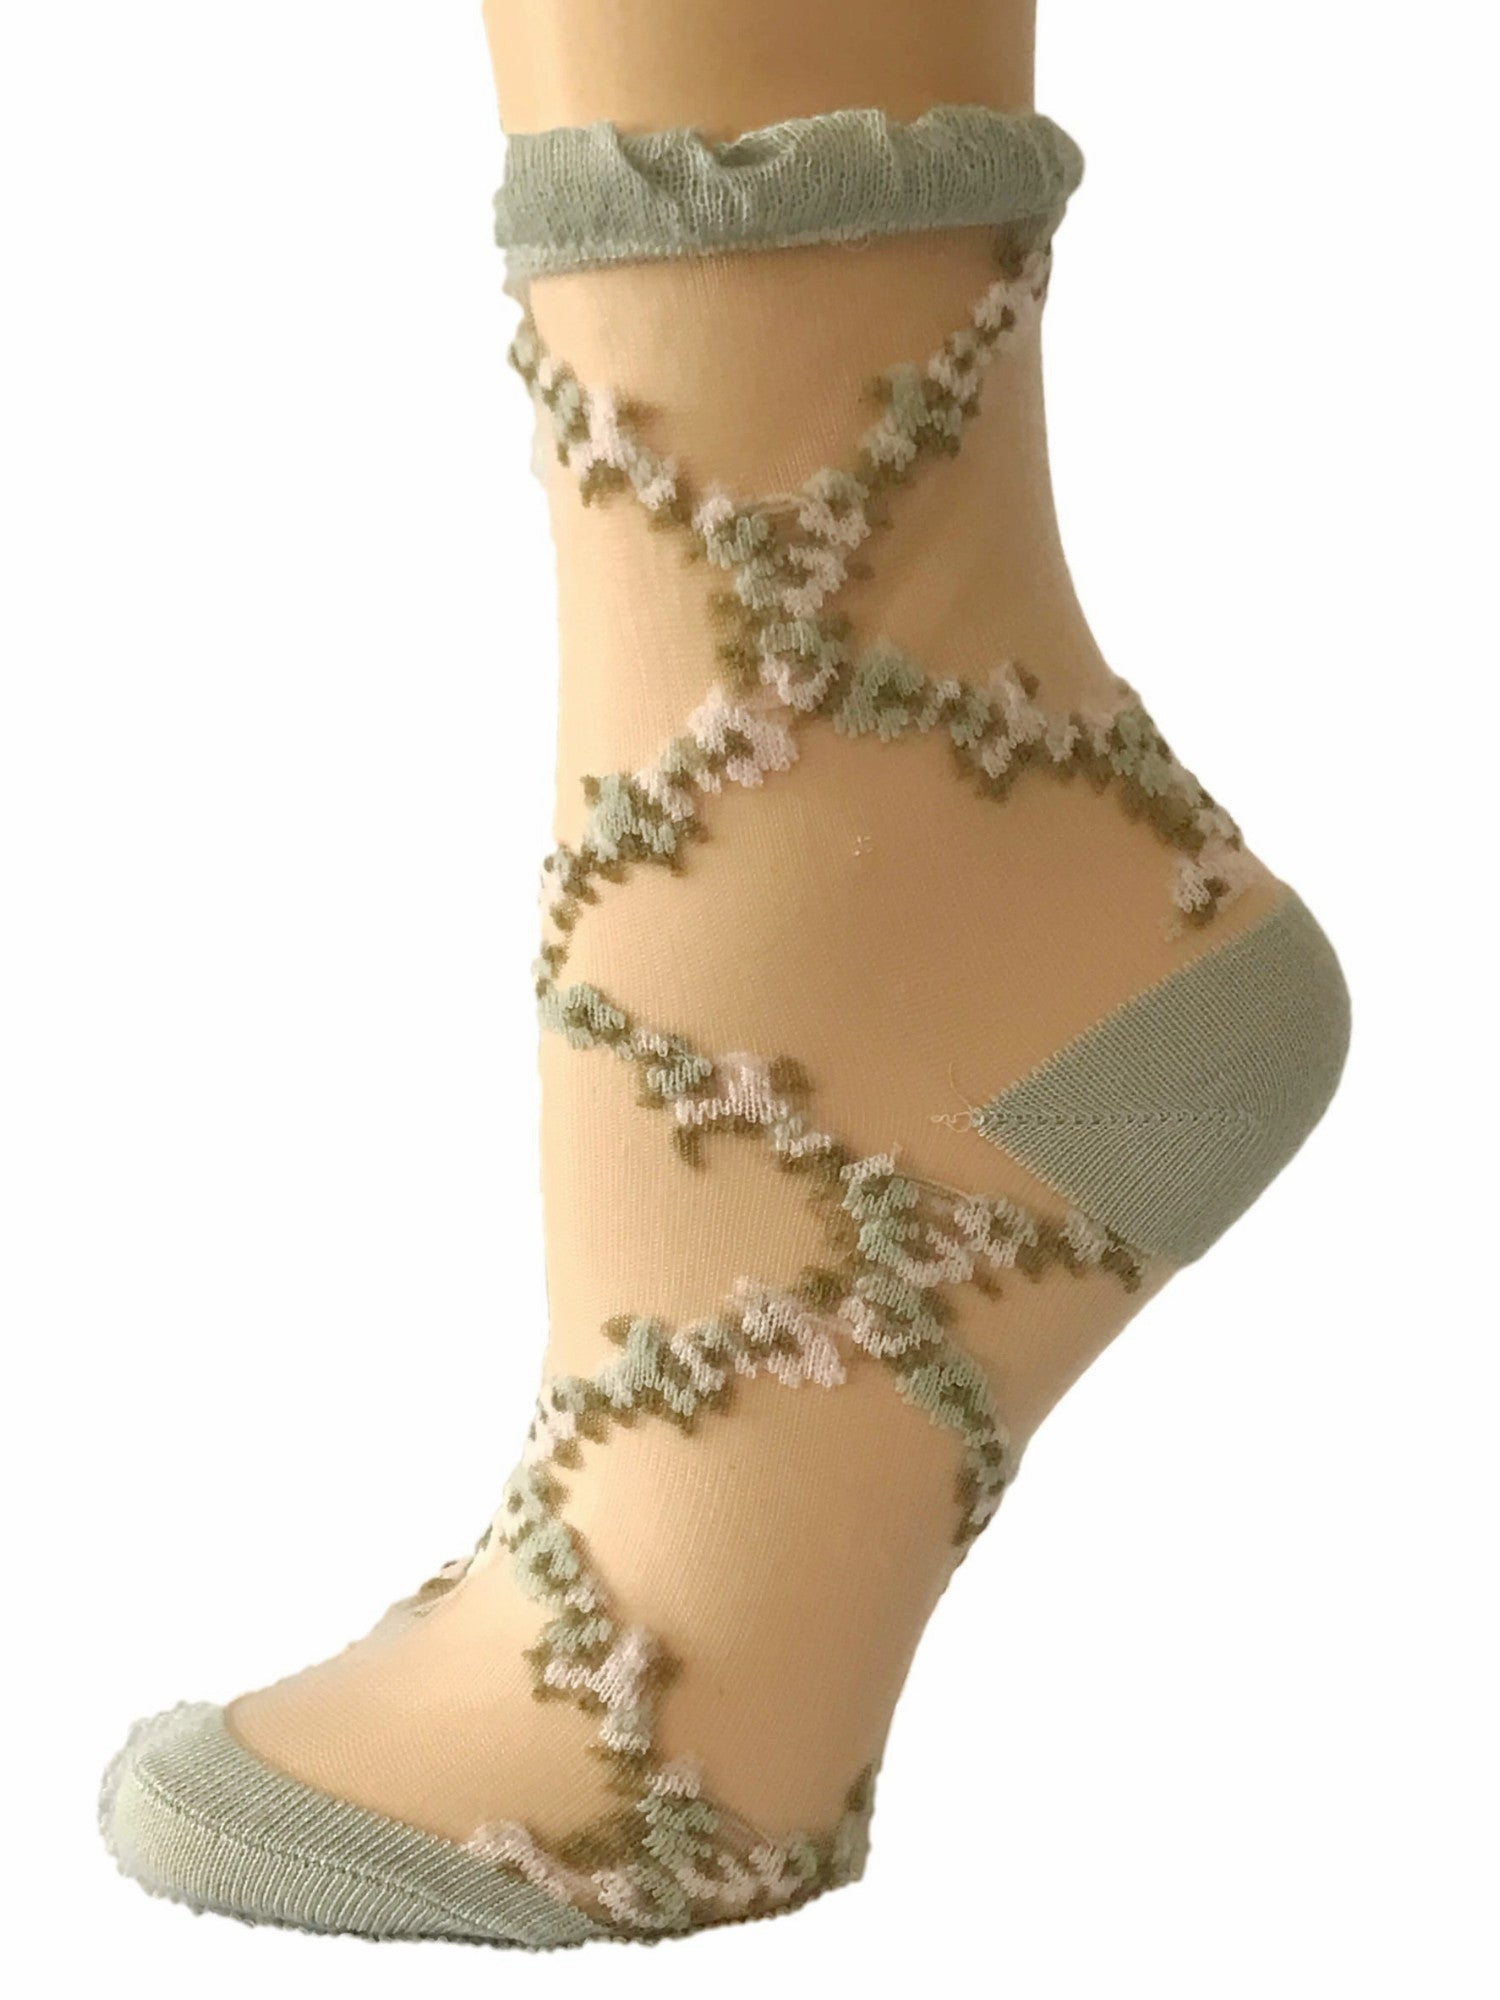 Stunning Brown/White Flowers Sheer Socks-Global Trendz Fashion®